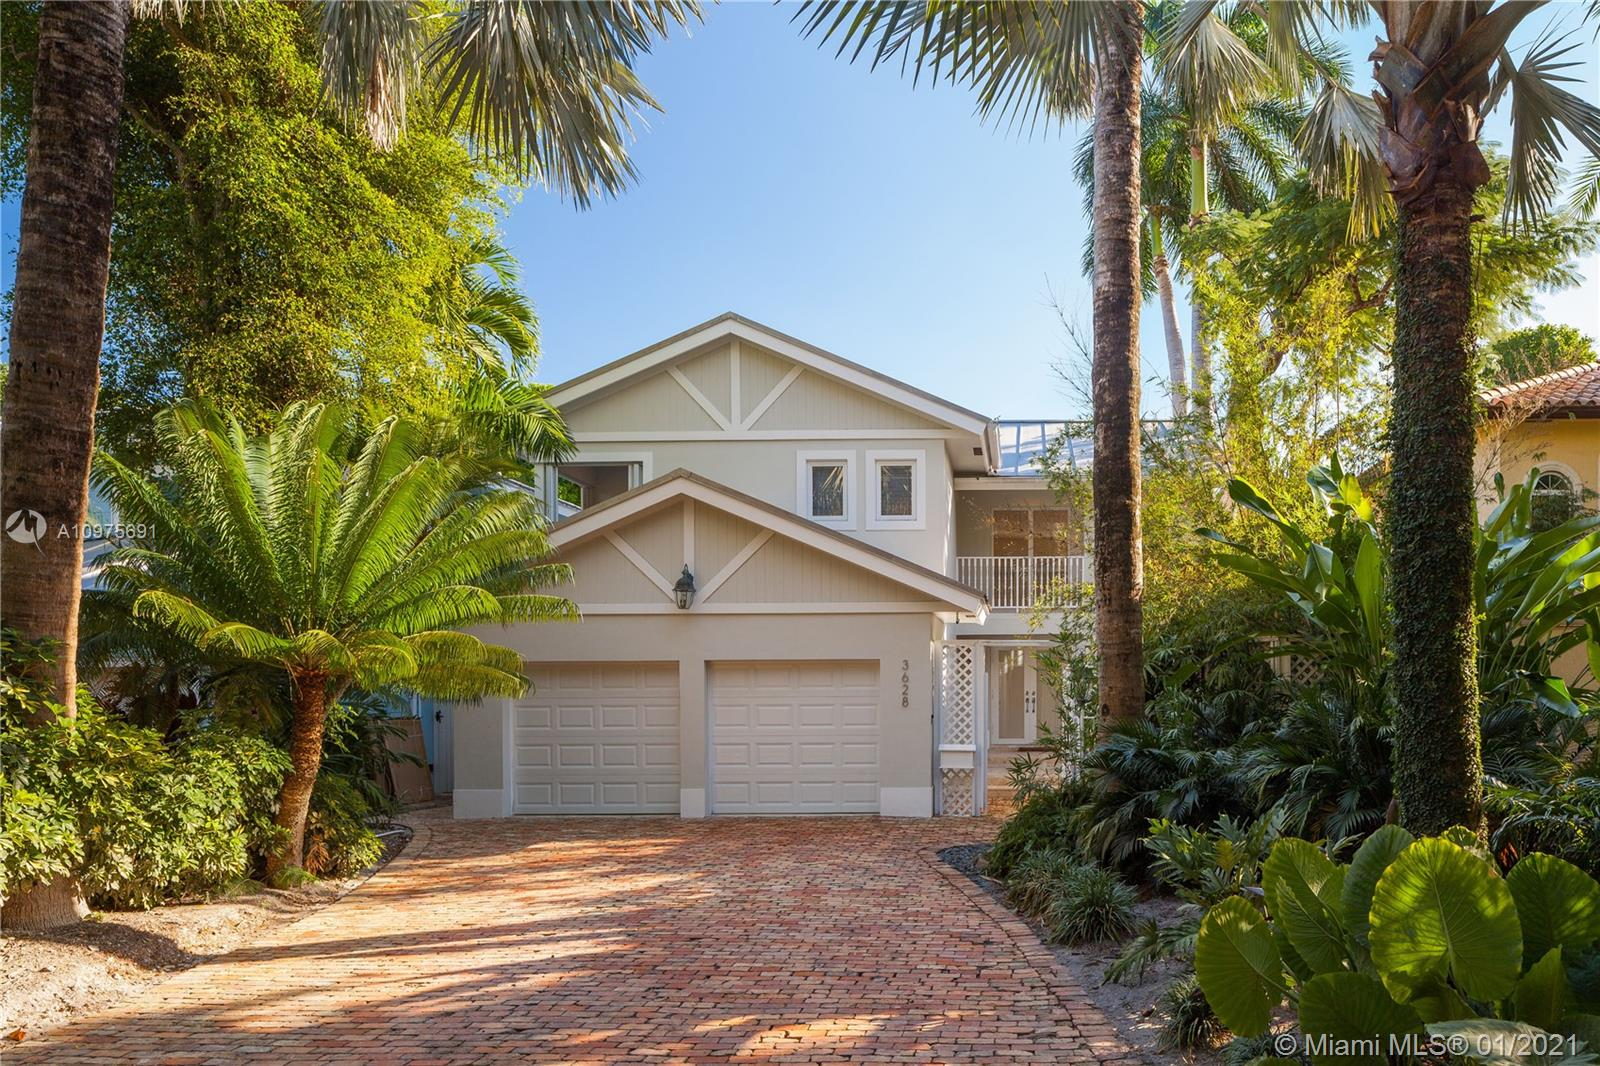 Details for 3628 Royal Palm Ave, Coconut Grove, FL 33133